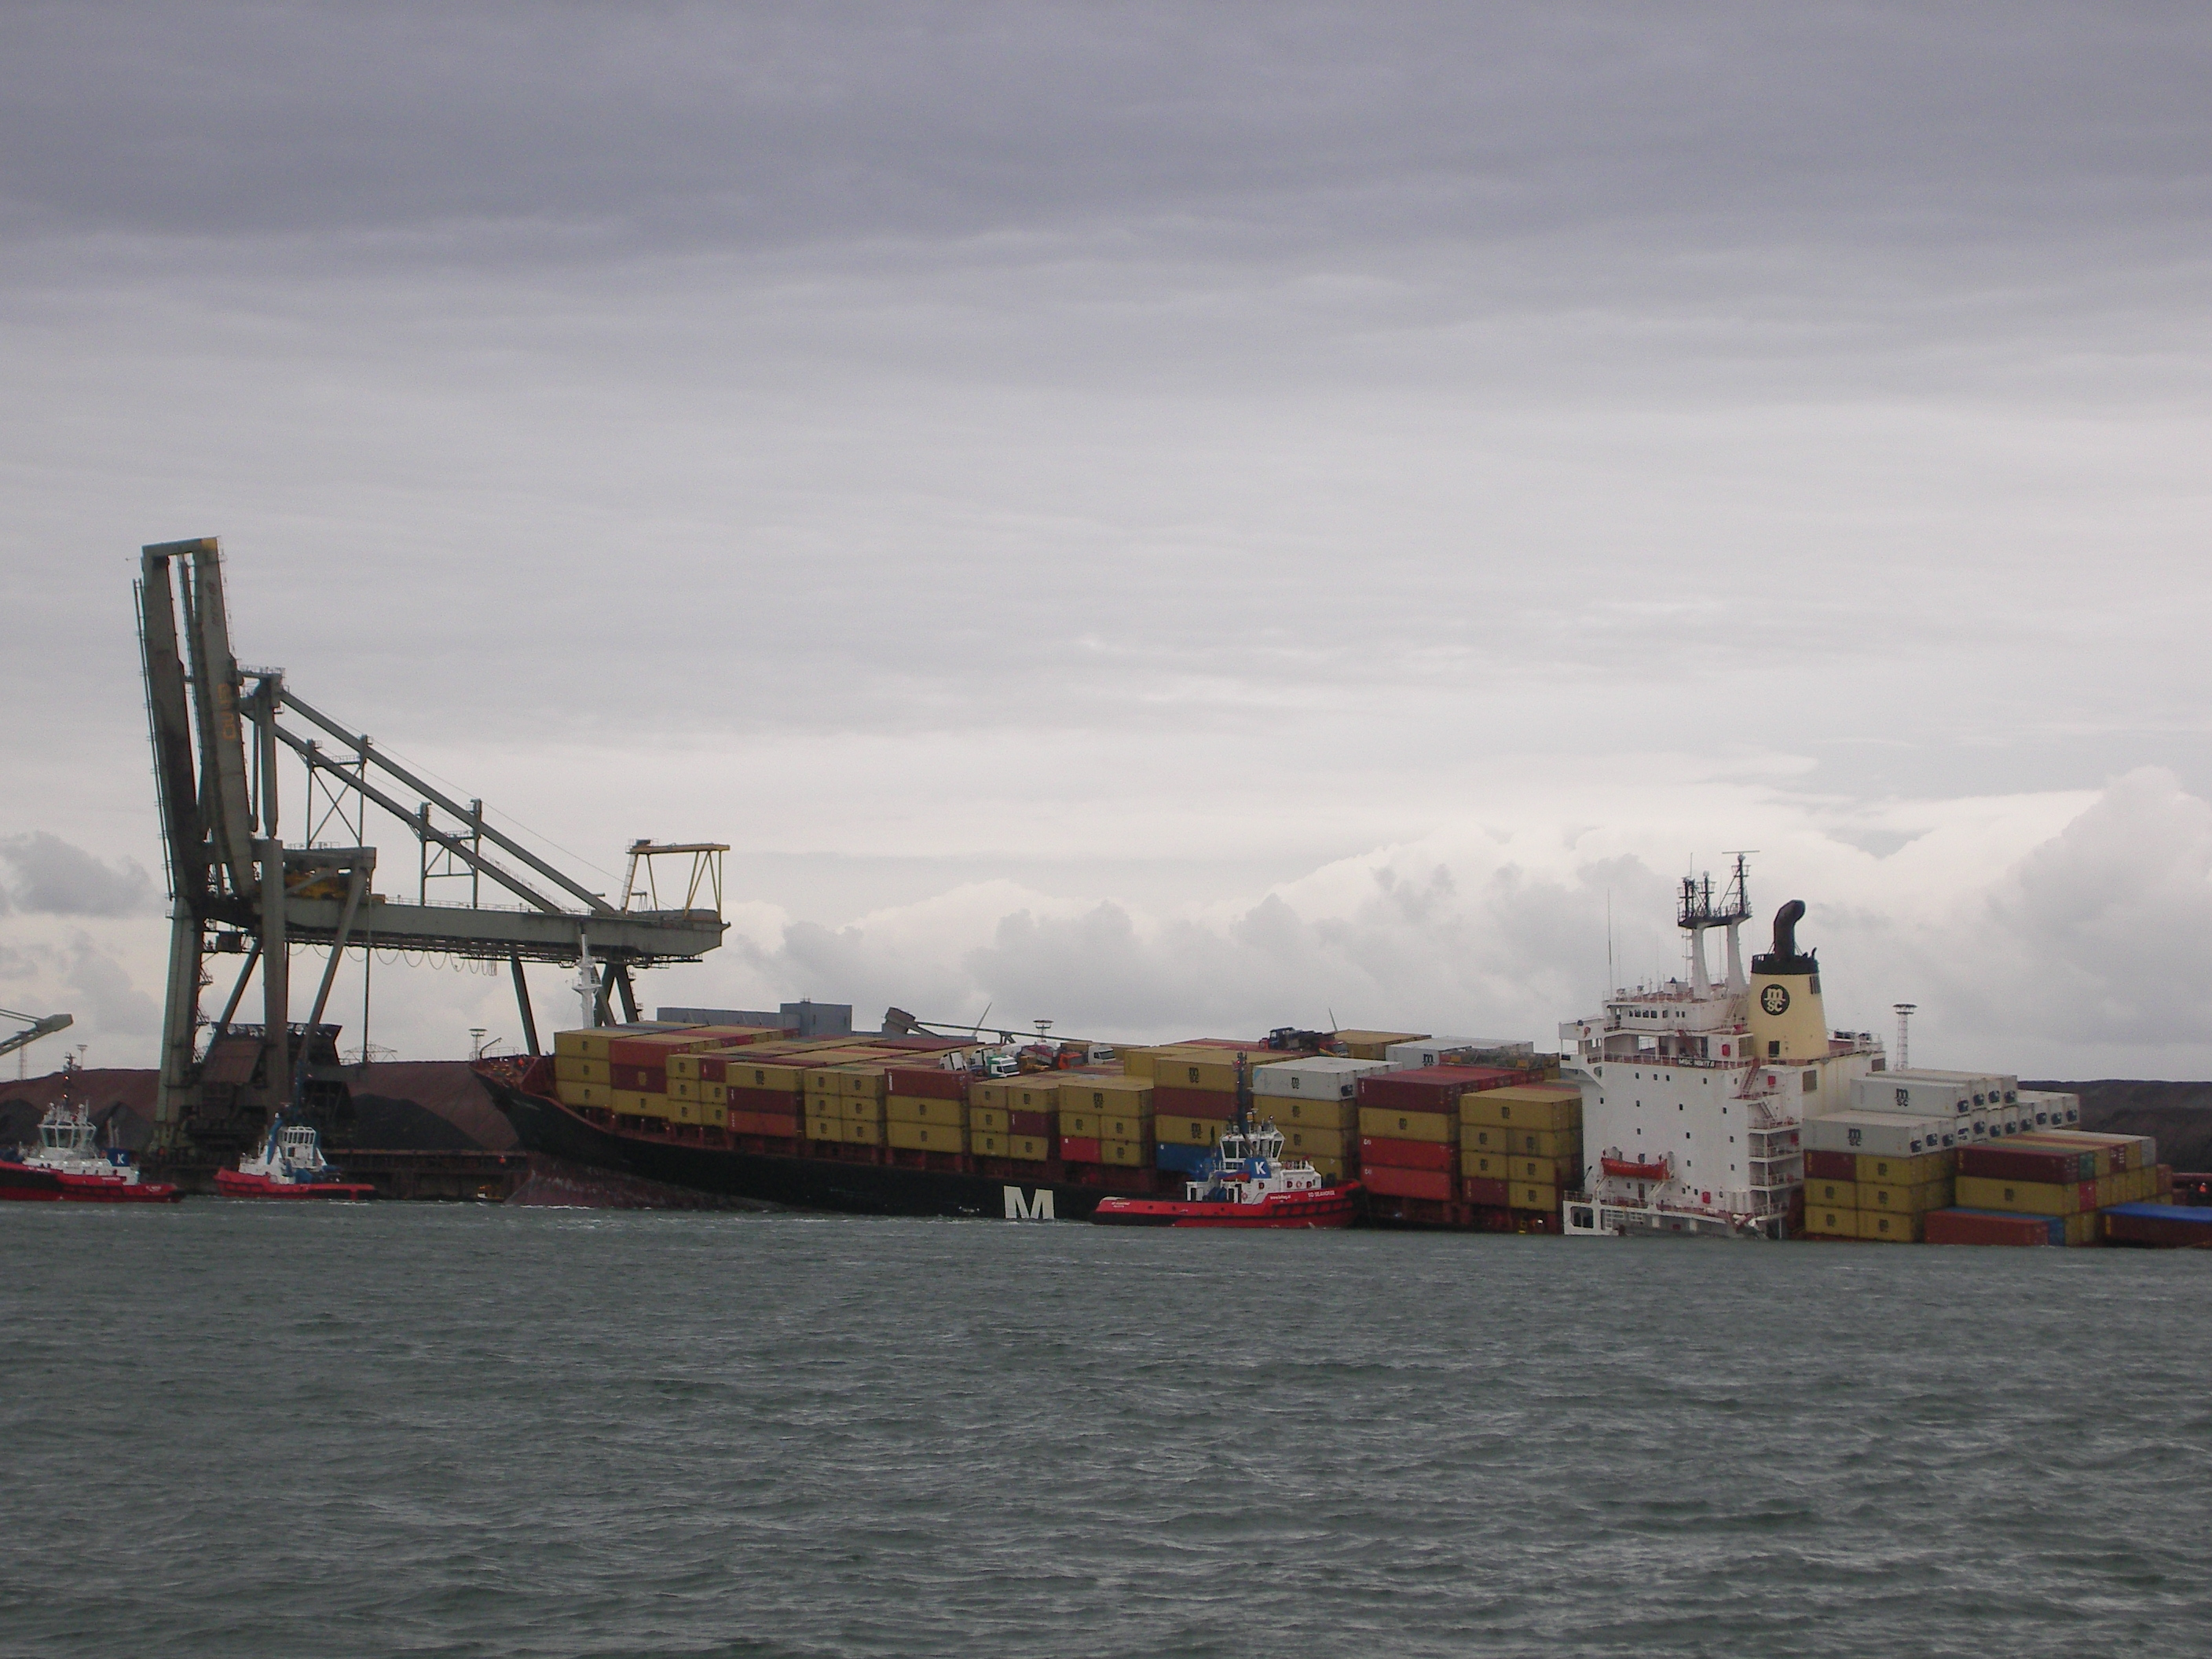 Collision between MSC NIKITA and NIRINT PRIDE 29 August 2009